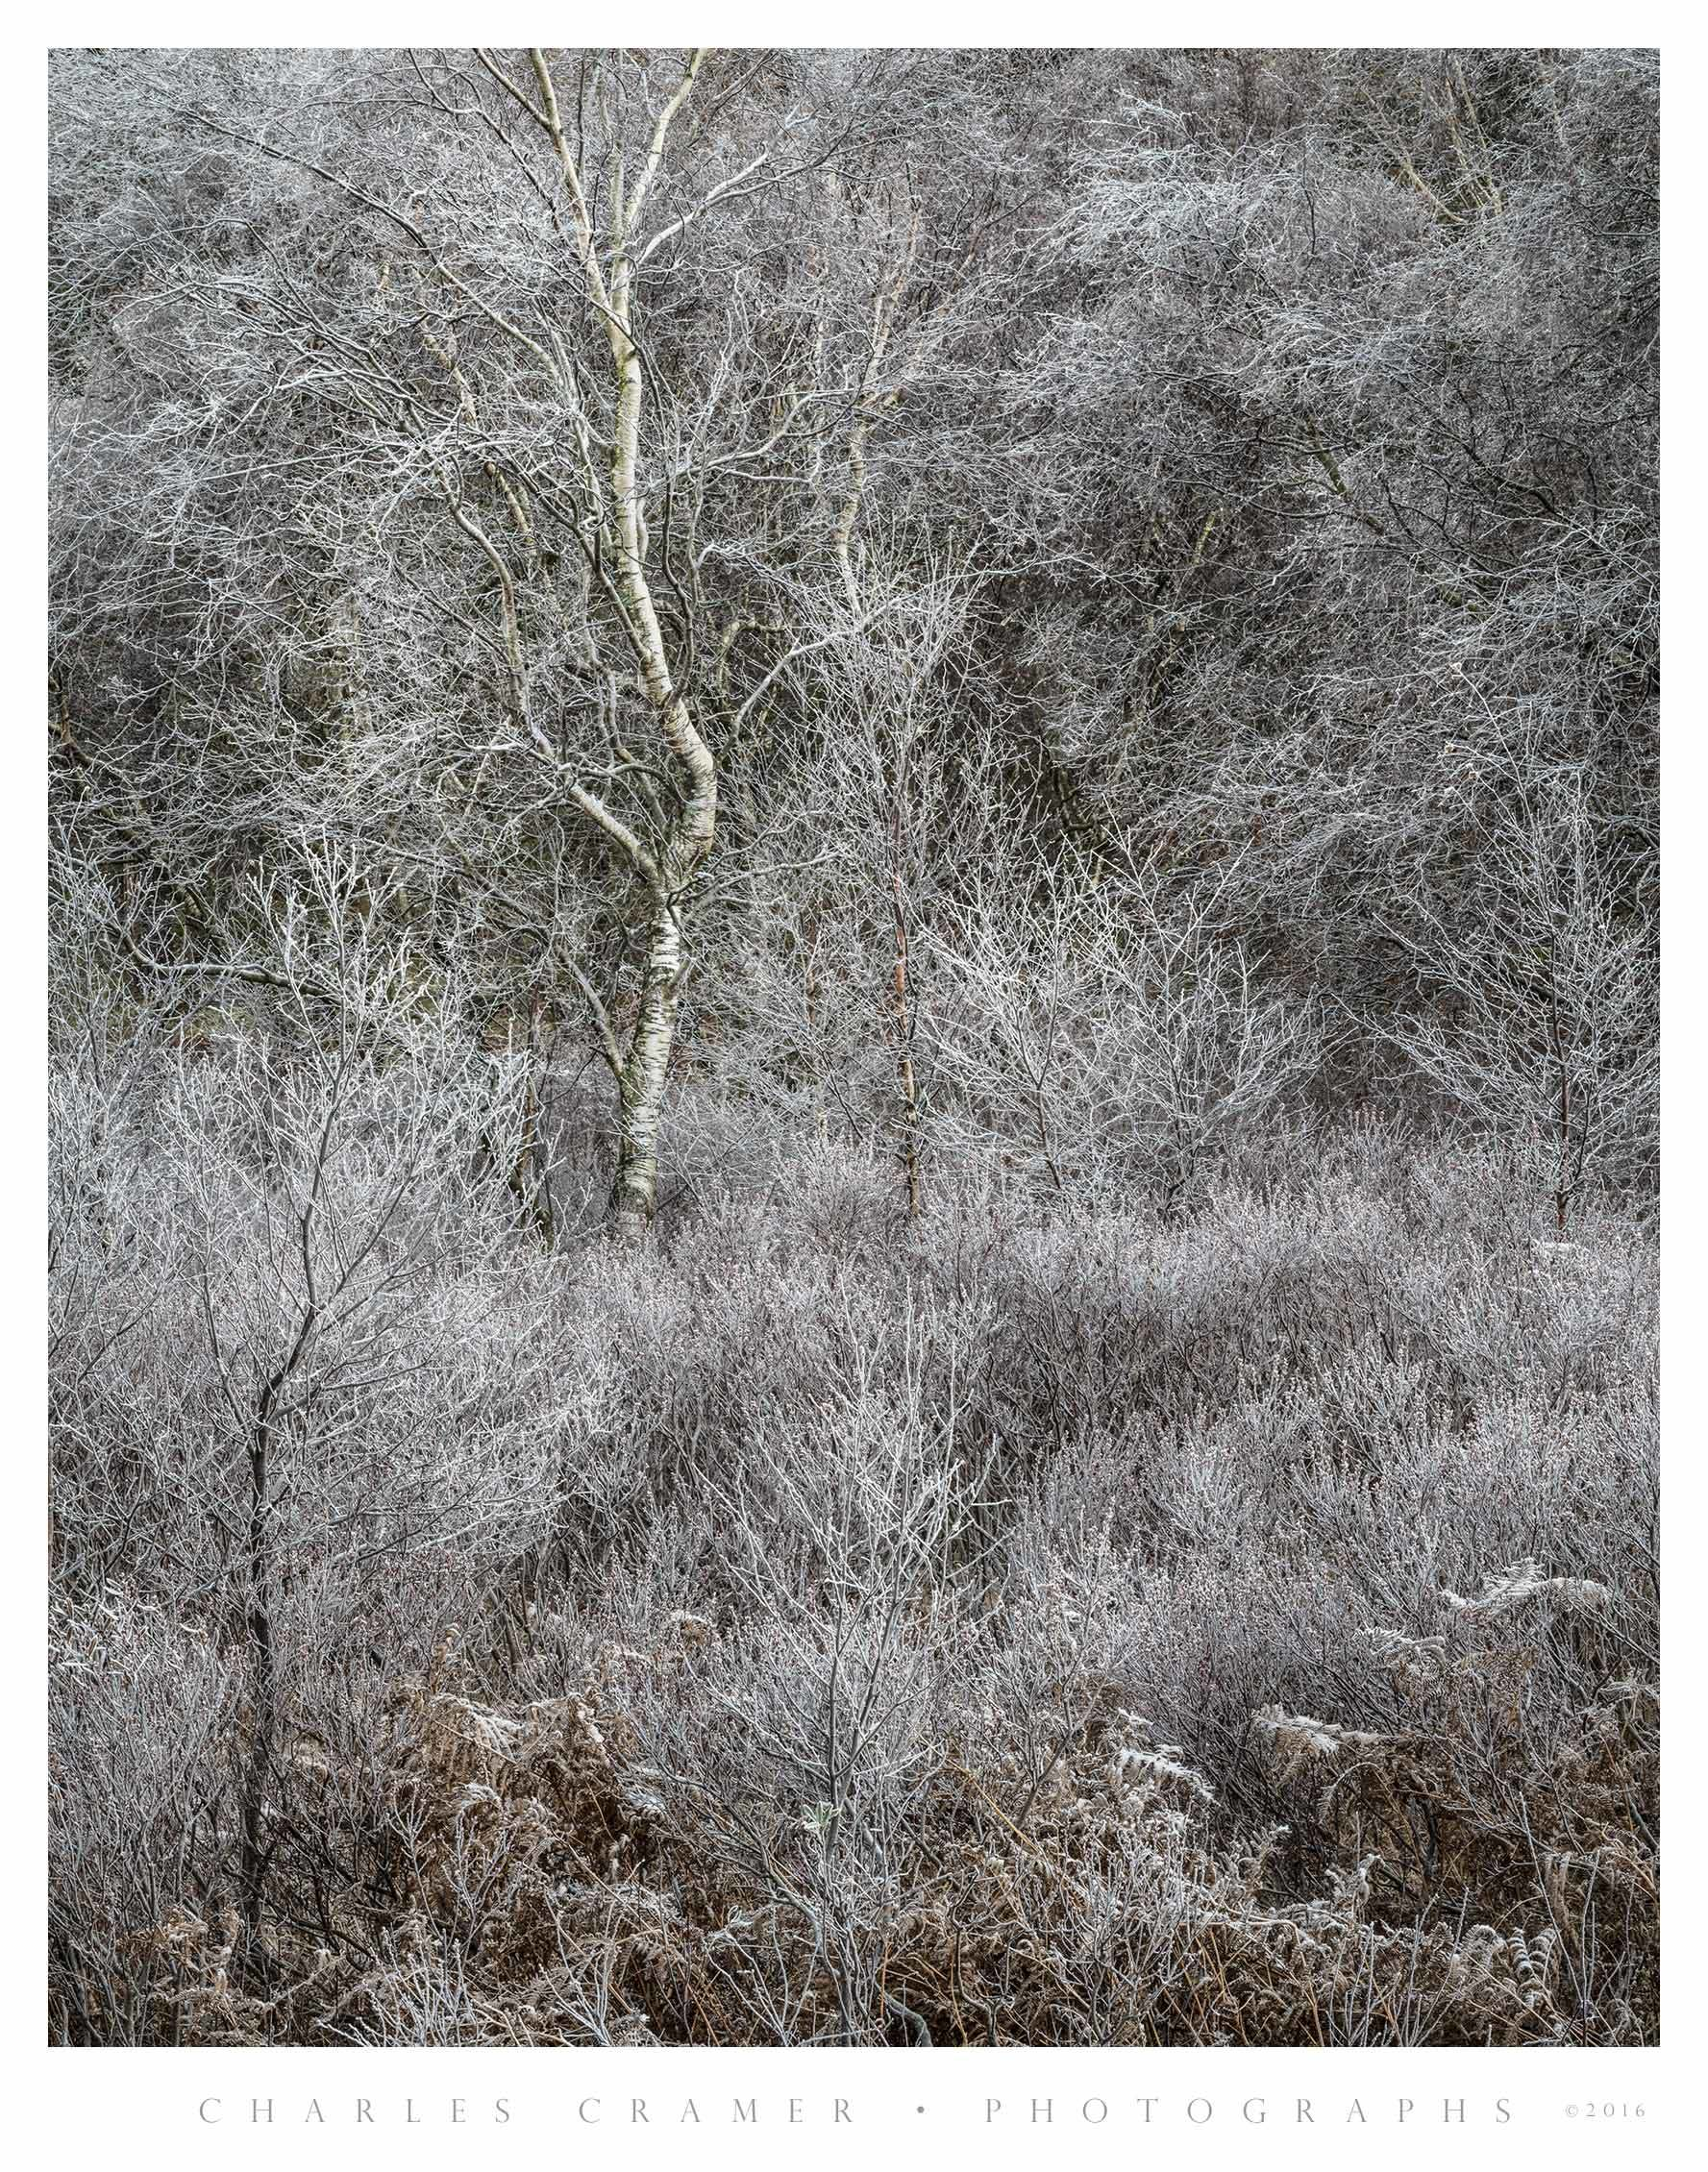 Frost, Silver Birch, Lakes District, England